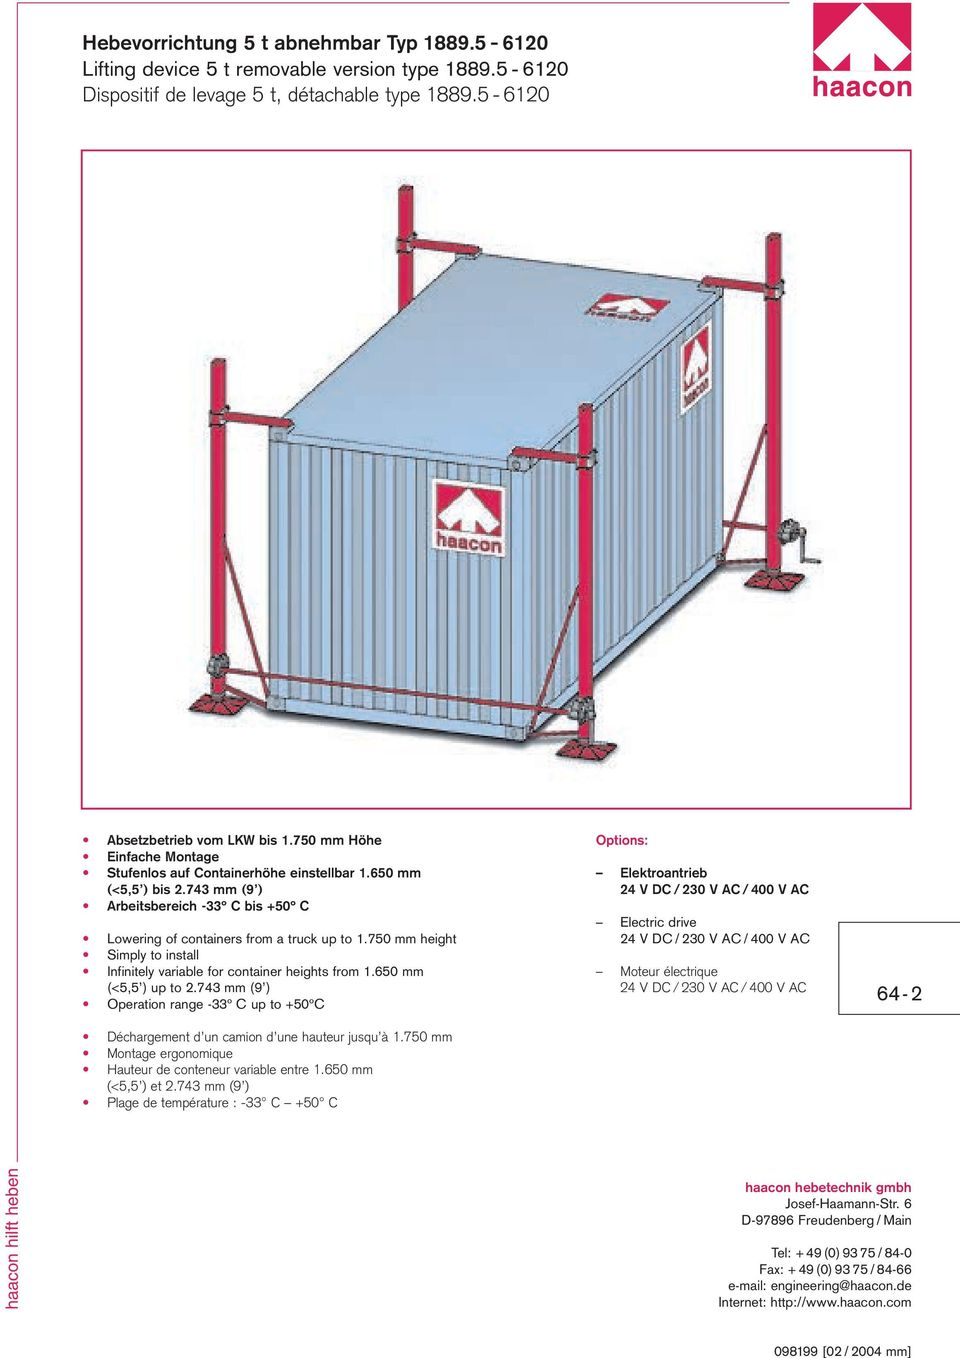 750 mm height Simply to install Infinitely variable for container heights from 1.650 mm (<5,5 ) up to 2.743 mm (9 ) Operation range -33º C up to +50ºC Déchargement d un camion d une hauteur jusqu à 1.